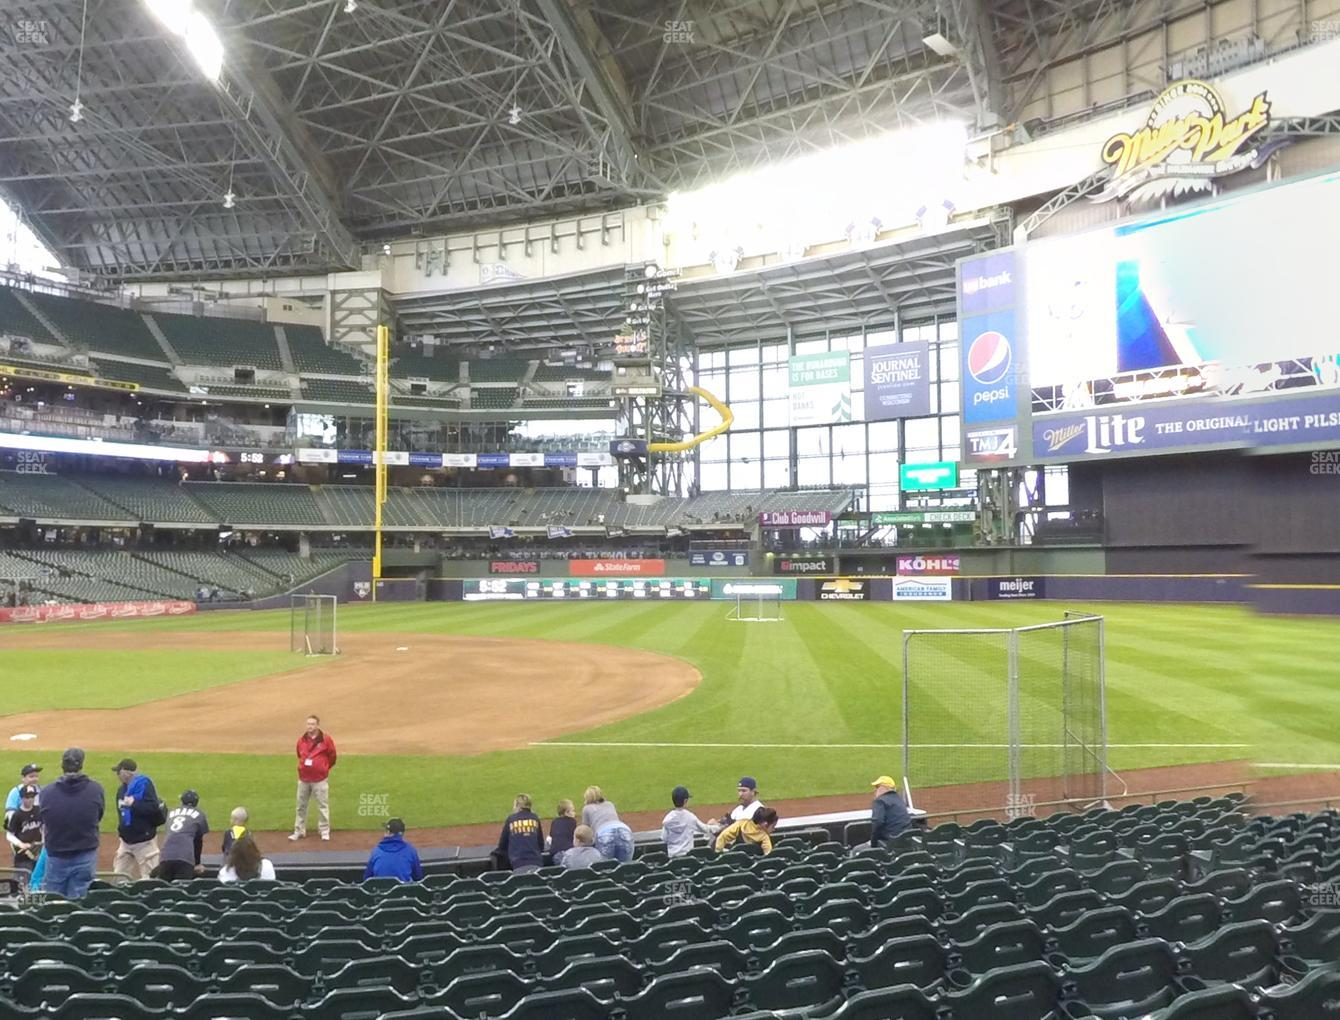 Concert at Miller Park Section 111 View